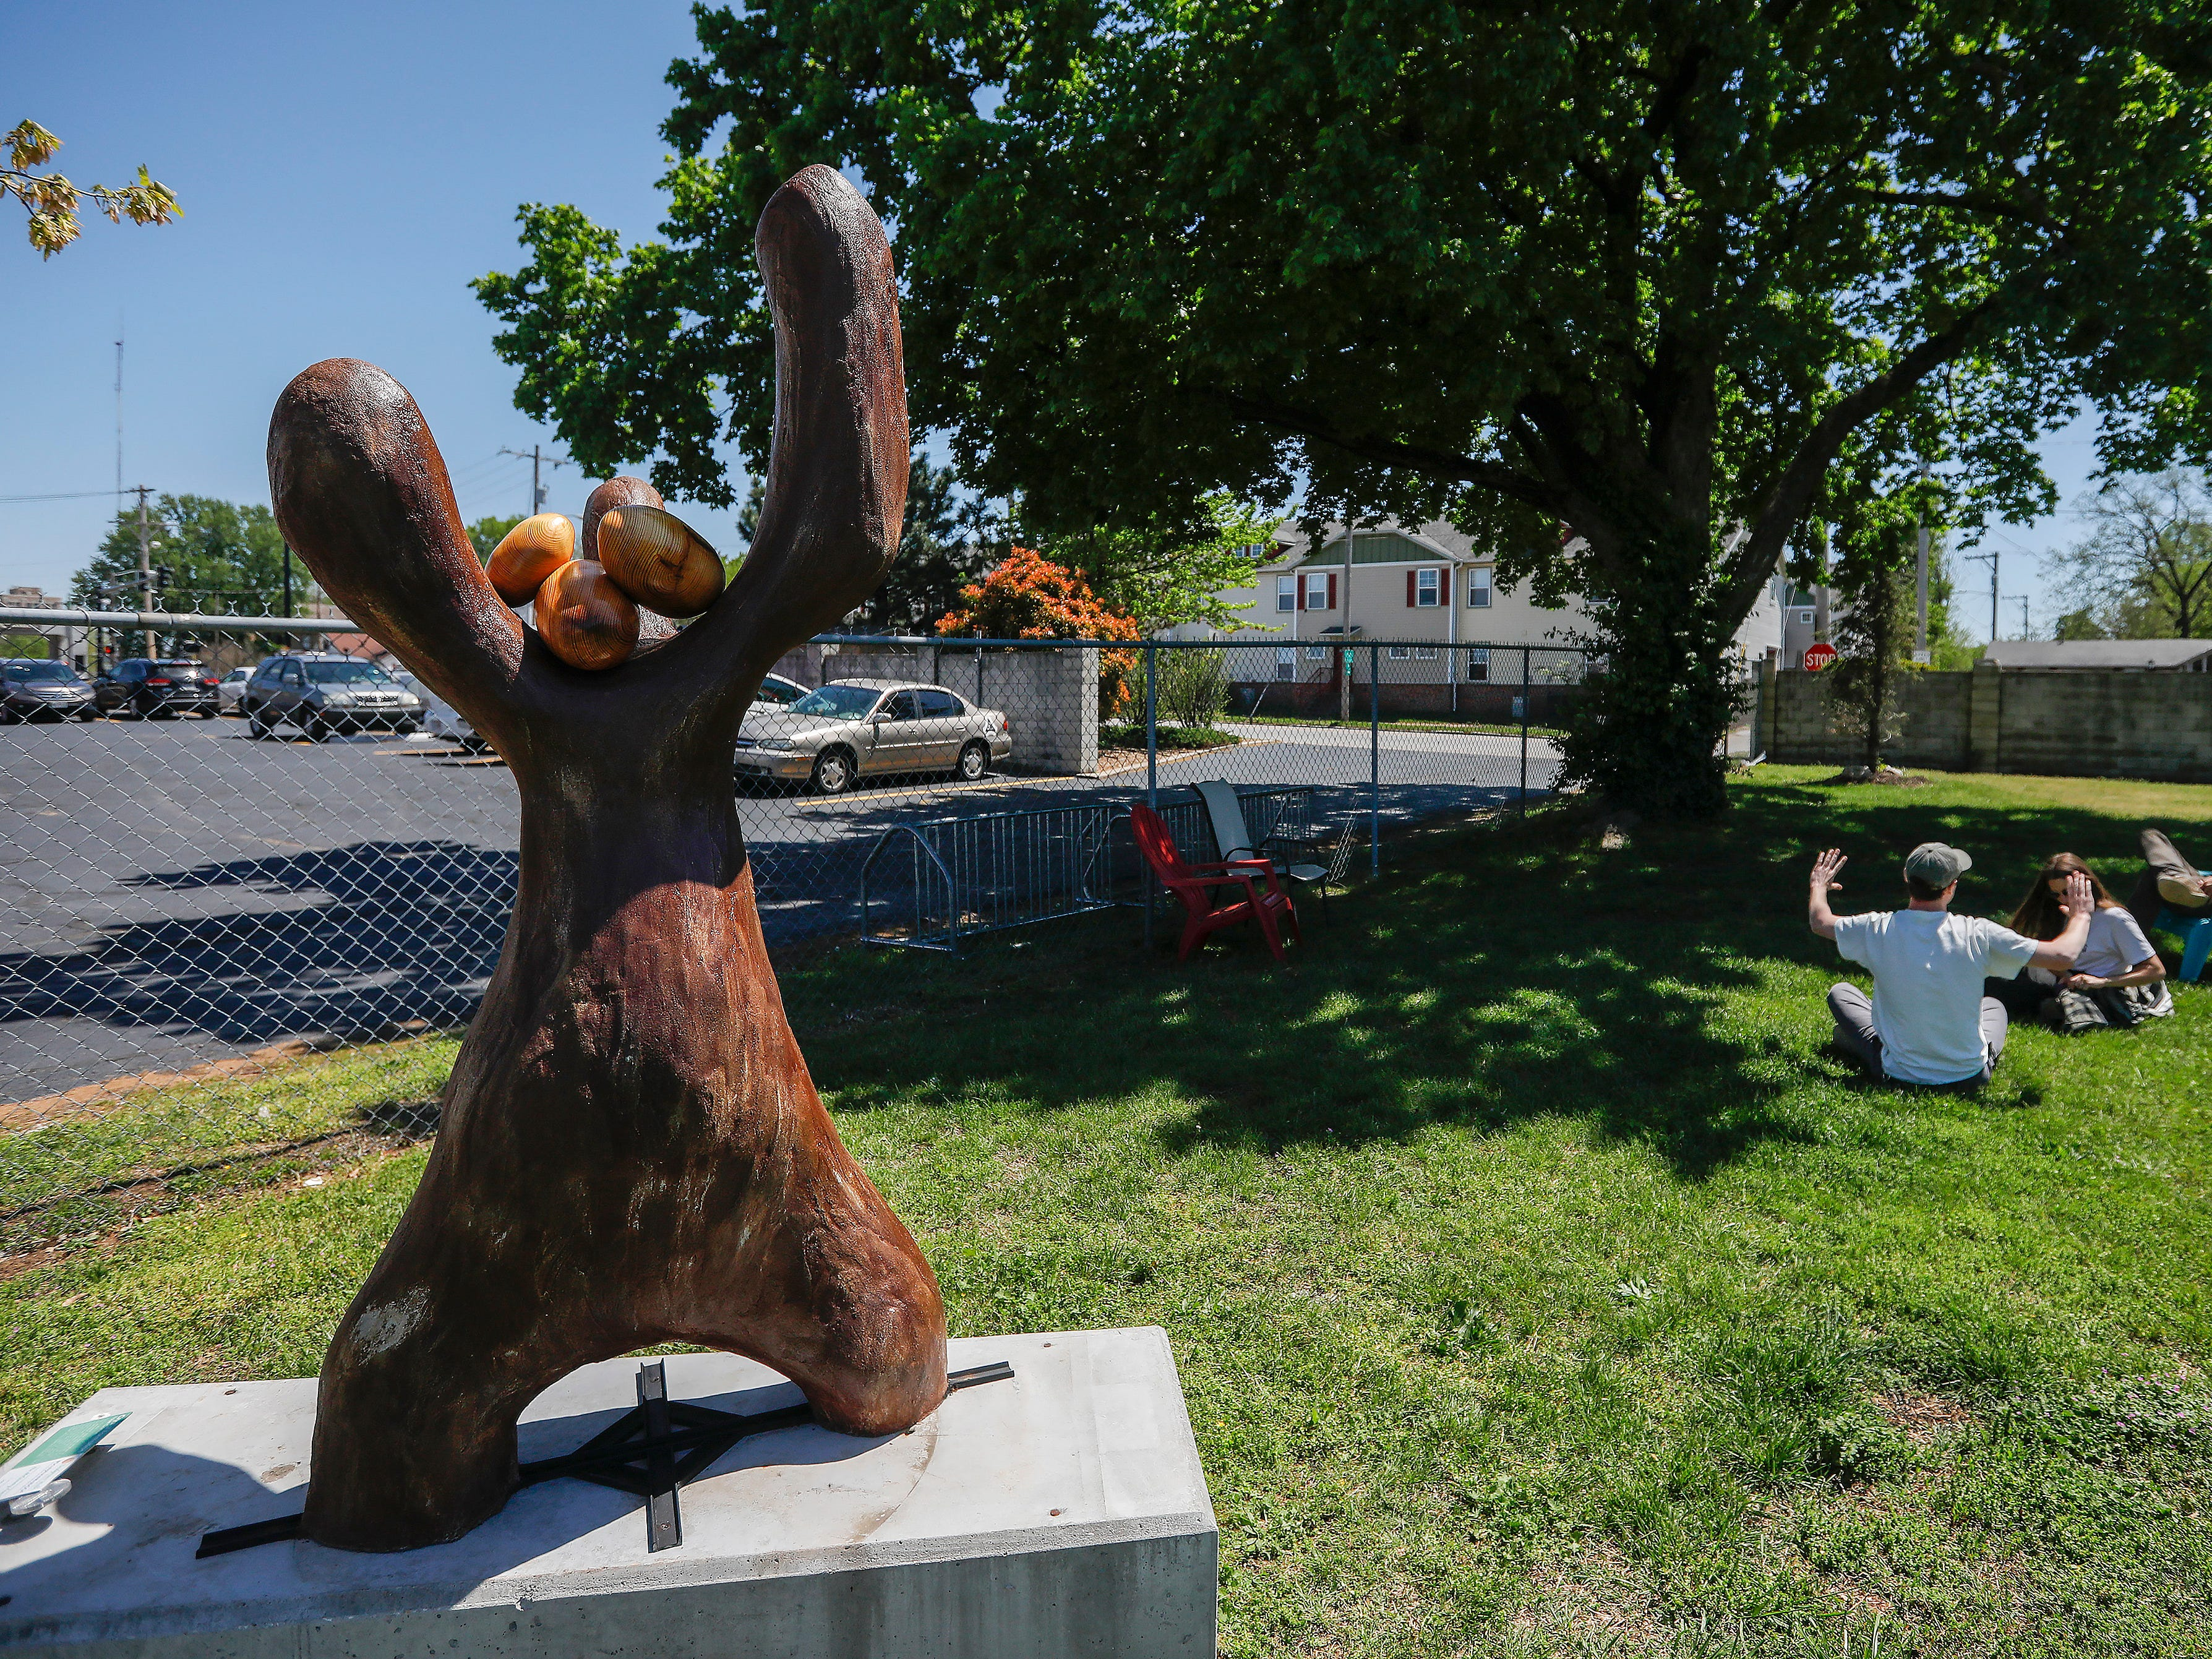 """Body"" by Sarah Stracke is located in the backyard at Mother's Brewing Company."